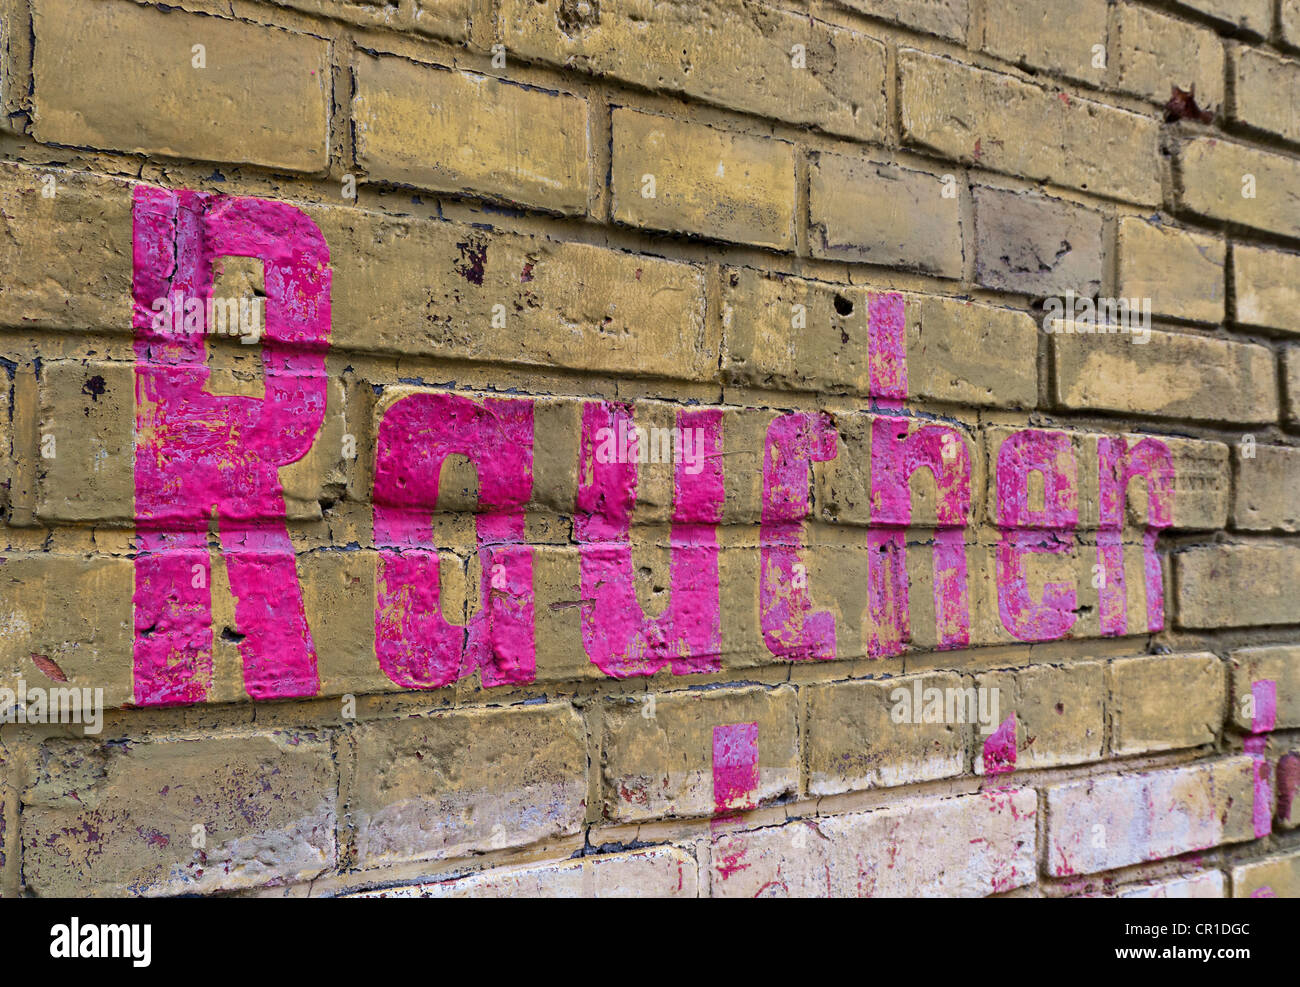 Brick wall with the word 'Rauchen', German for 'smoking', in magenta colour, Berlin, Germany, Europe - Stock Image